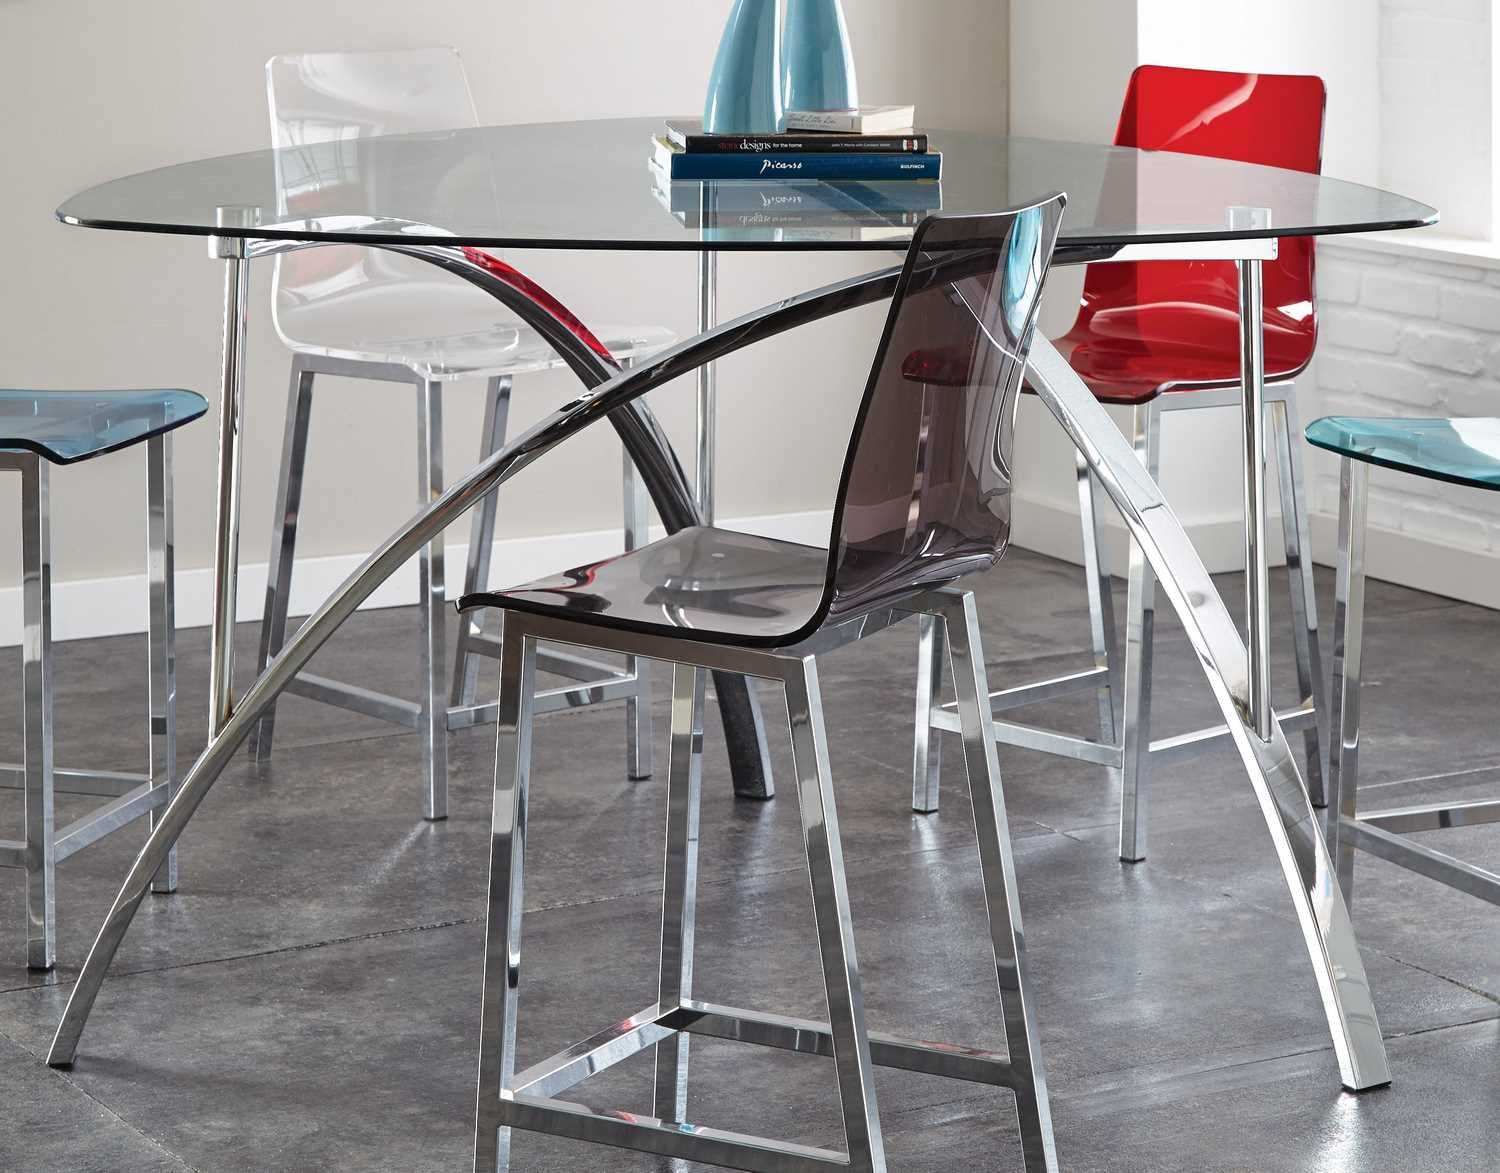 Buy Sicily 60 Inch Triangle Counter Height Table in Chrome on sale online